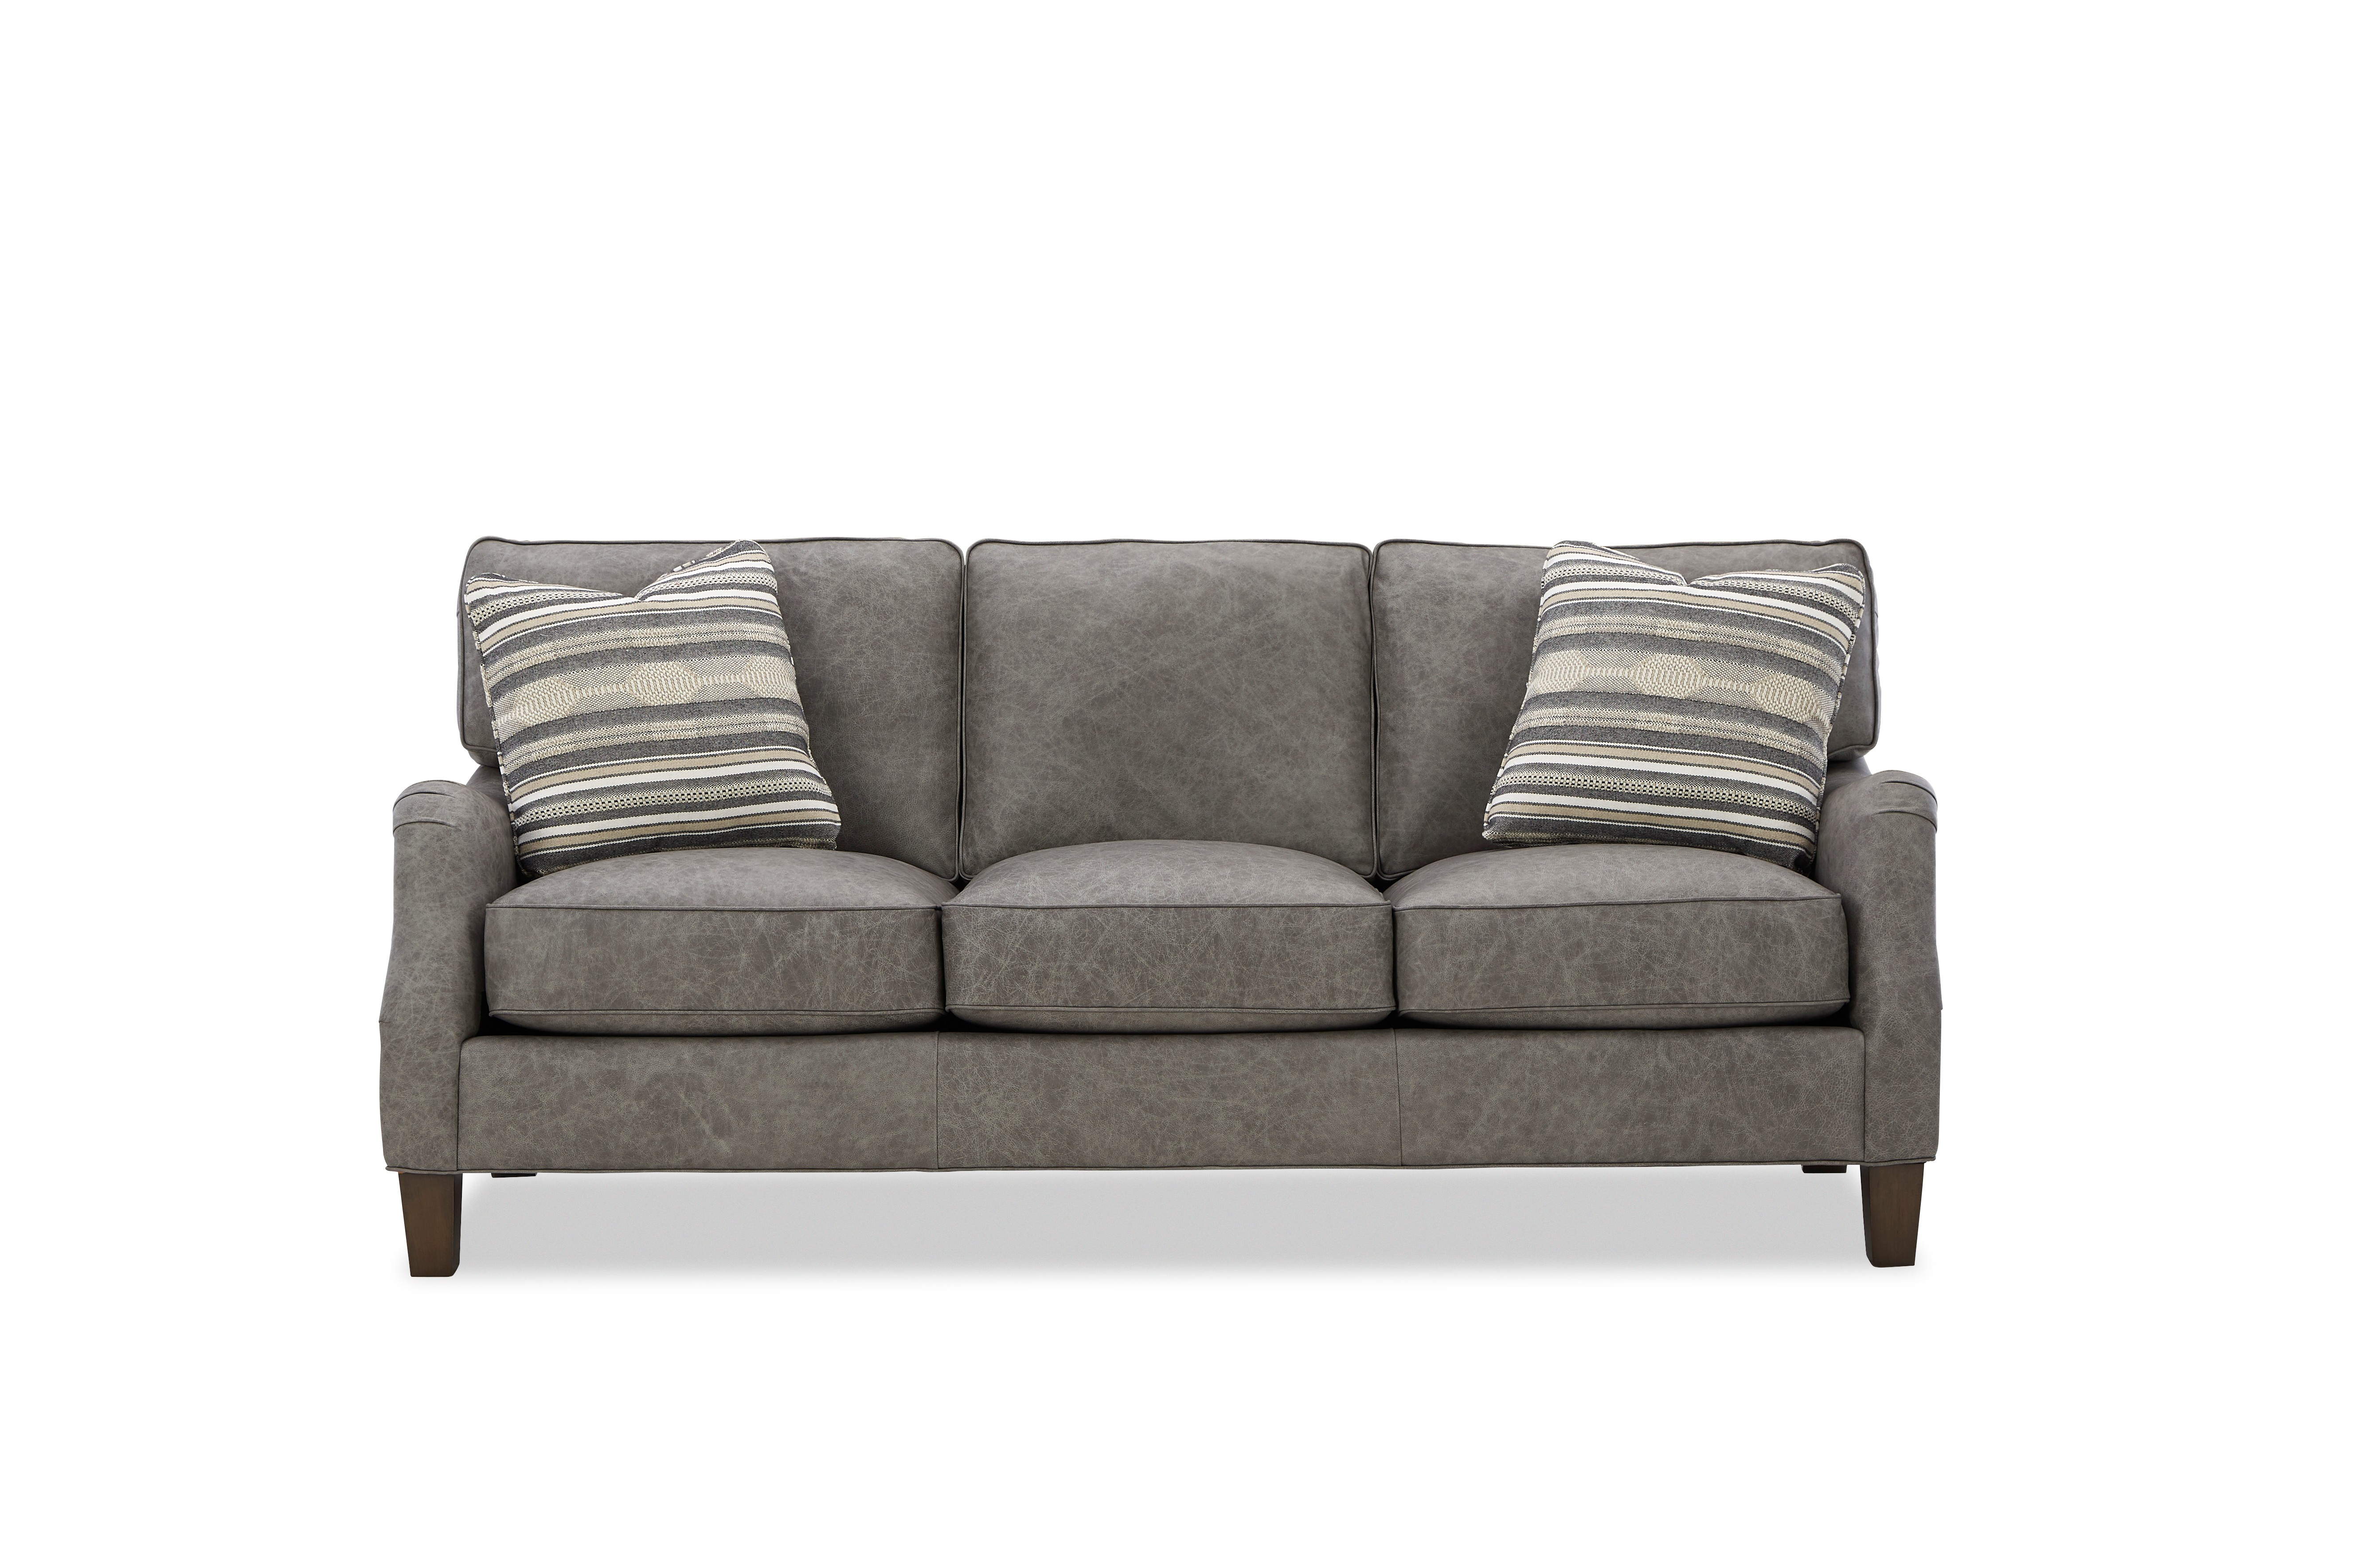 L713150BD Sofa w/ Pillows by Craftmaster at Prime Brothers Furniture